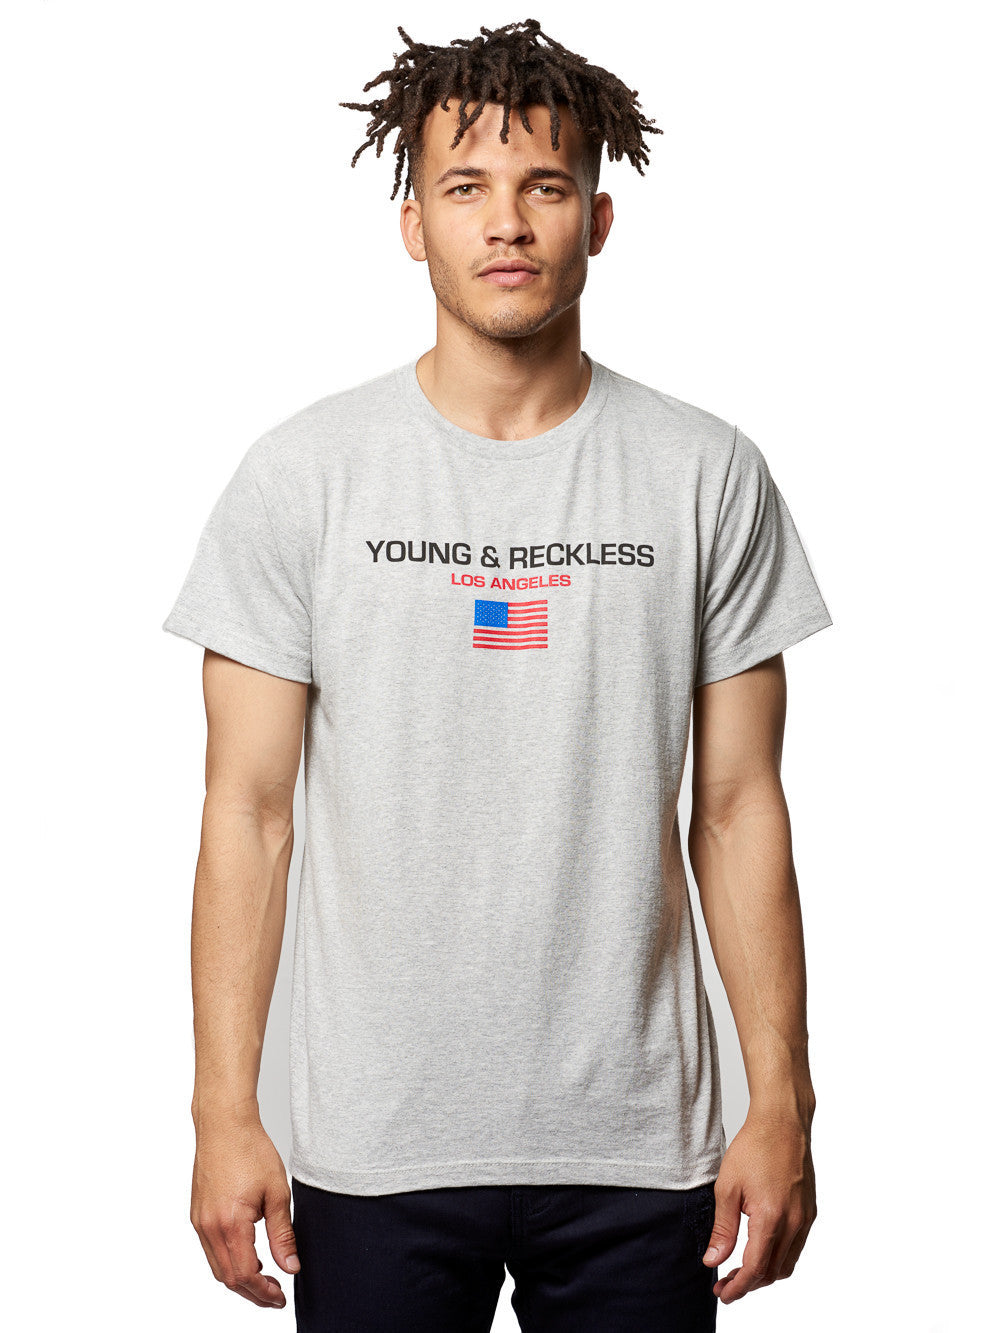 Young and Reckless Mens - Tees - Graphic Tee Liberty Tee- Concrete